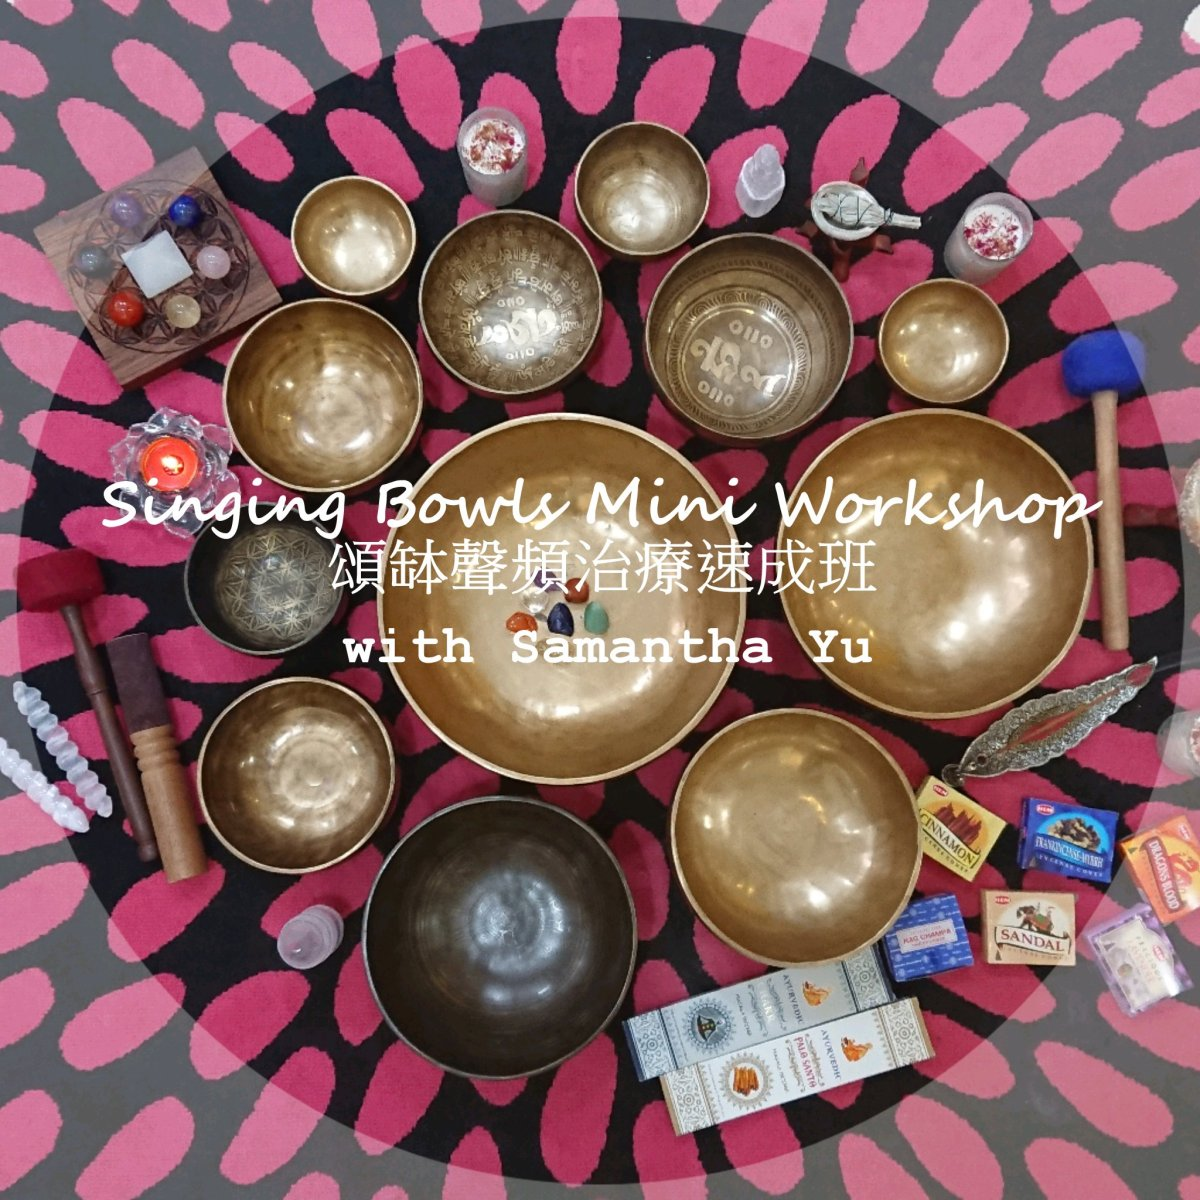 Singing Bowls Mini Workshop 頌缽聲頻治療速成班